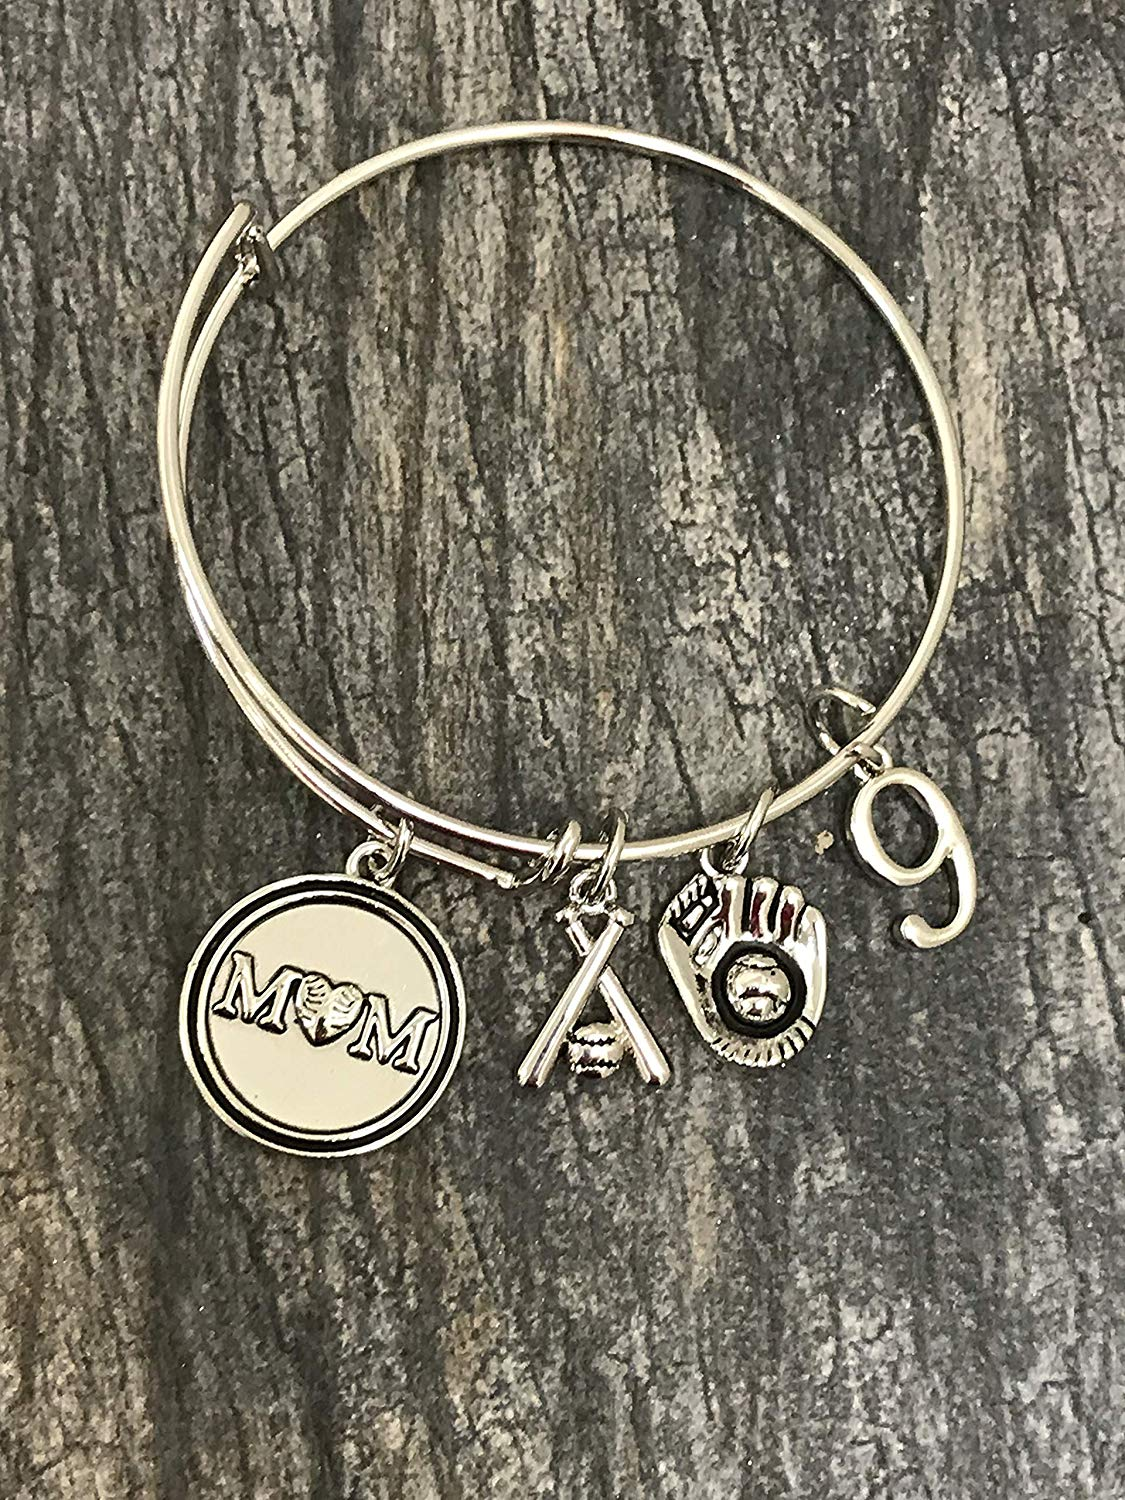 Personalized Baseball Mom Bracelet with Jersey Number Charm-Custom Baseball Jewelry For Moms -Softball Mom Bracelet- Perfect Gift for Baseball Mom